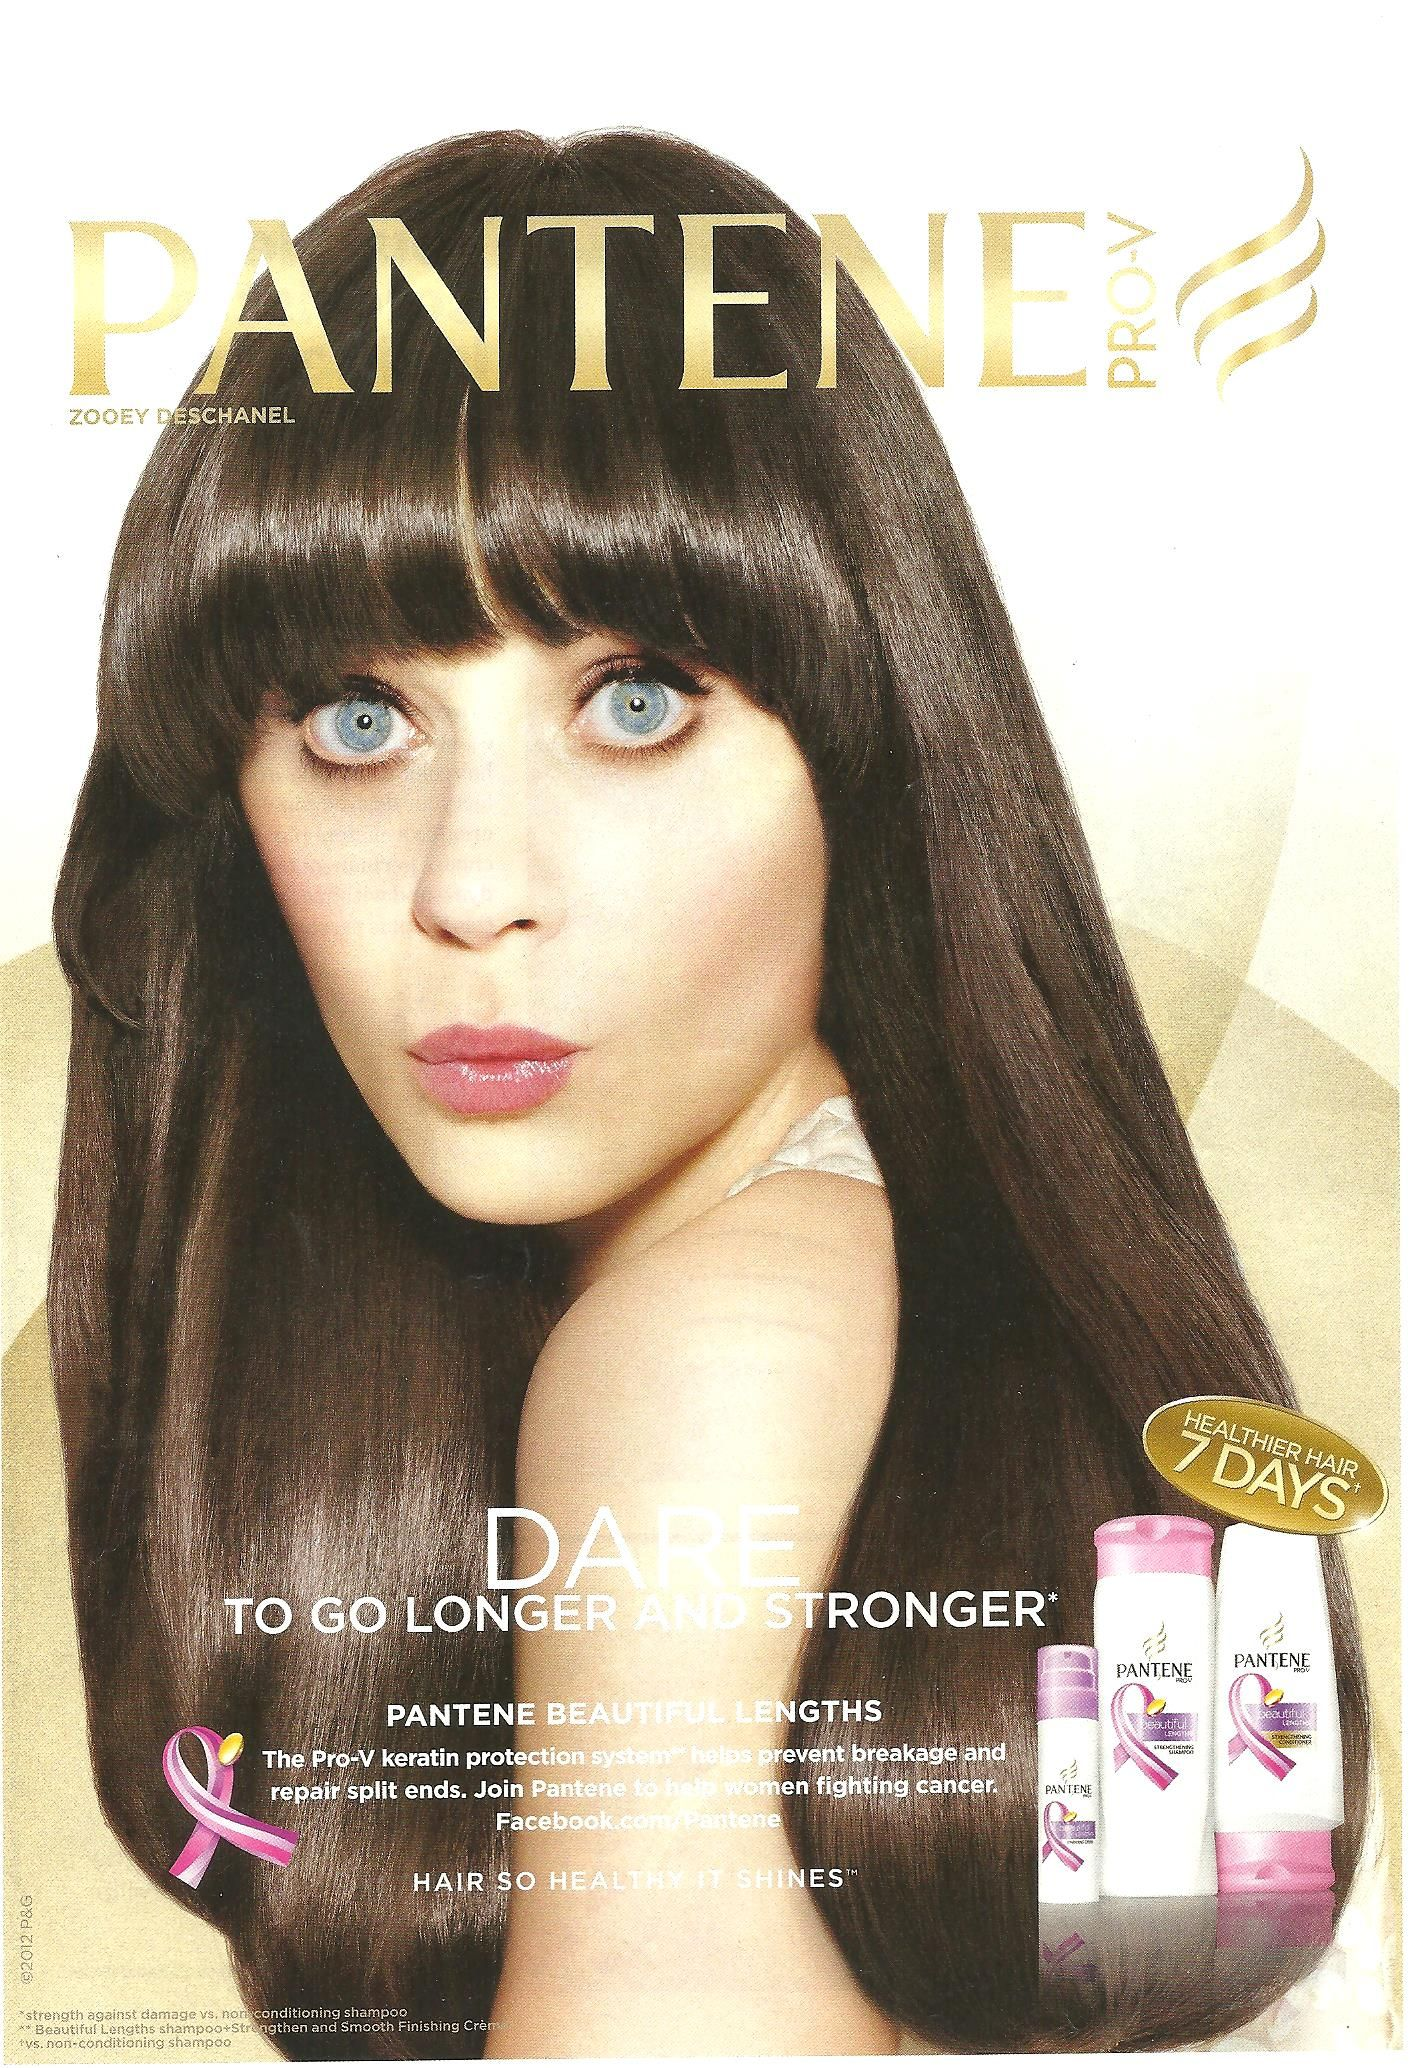 Where can you find the black-grey dress in the Pantene advert?